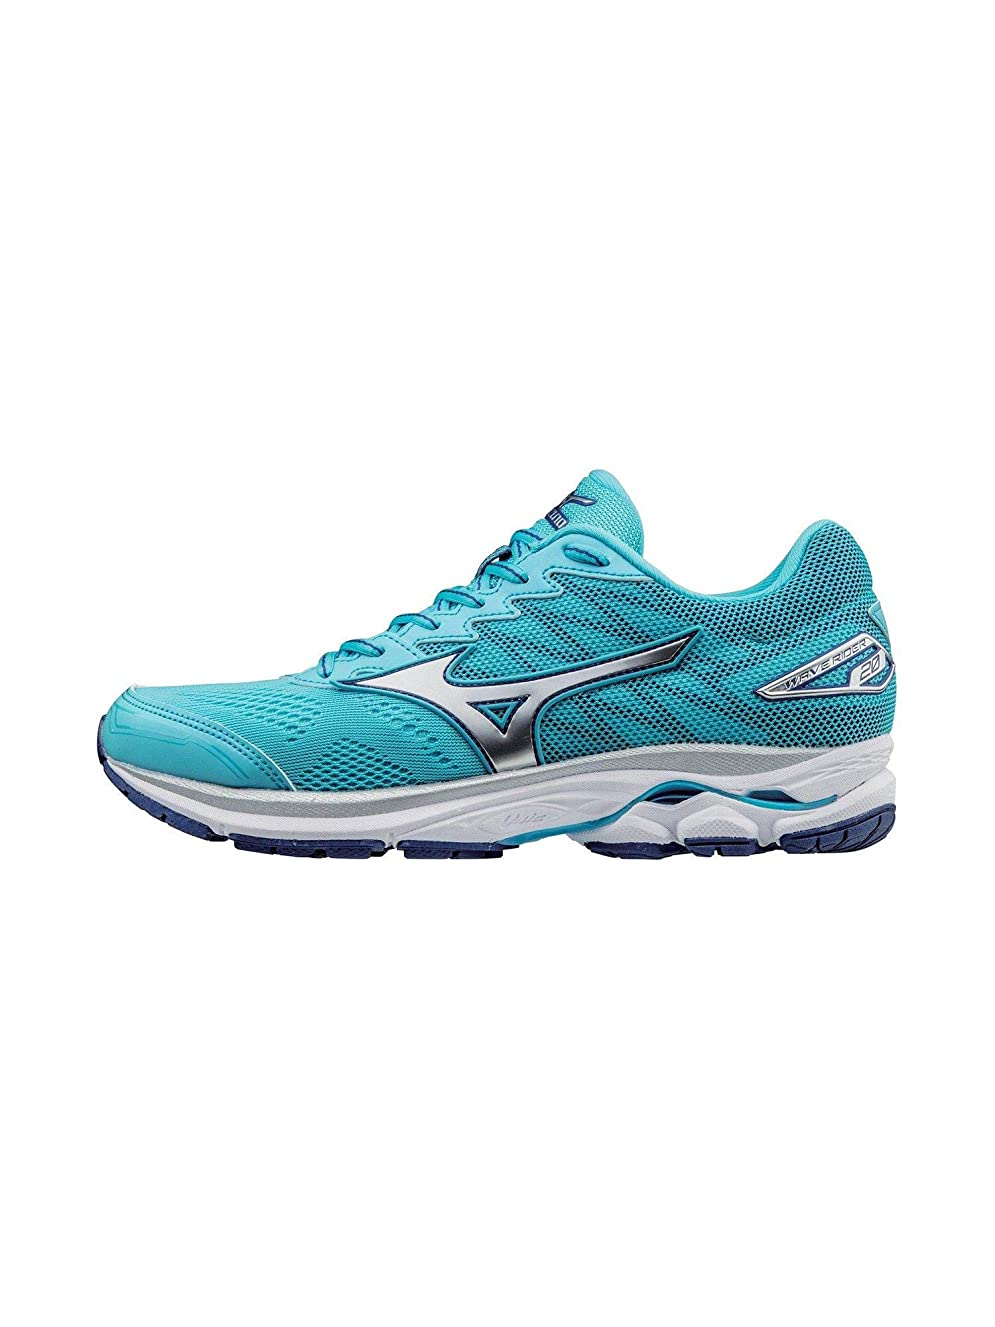 Mizuno Women's Wave Raider 20 Running Shoe